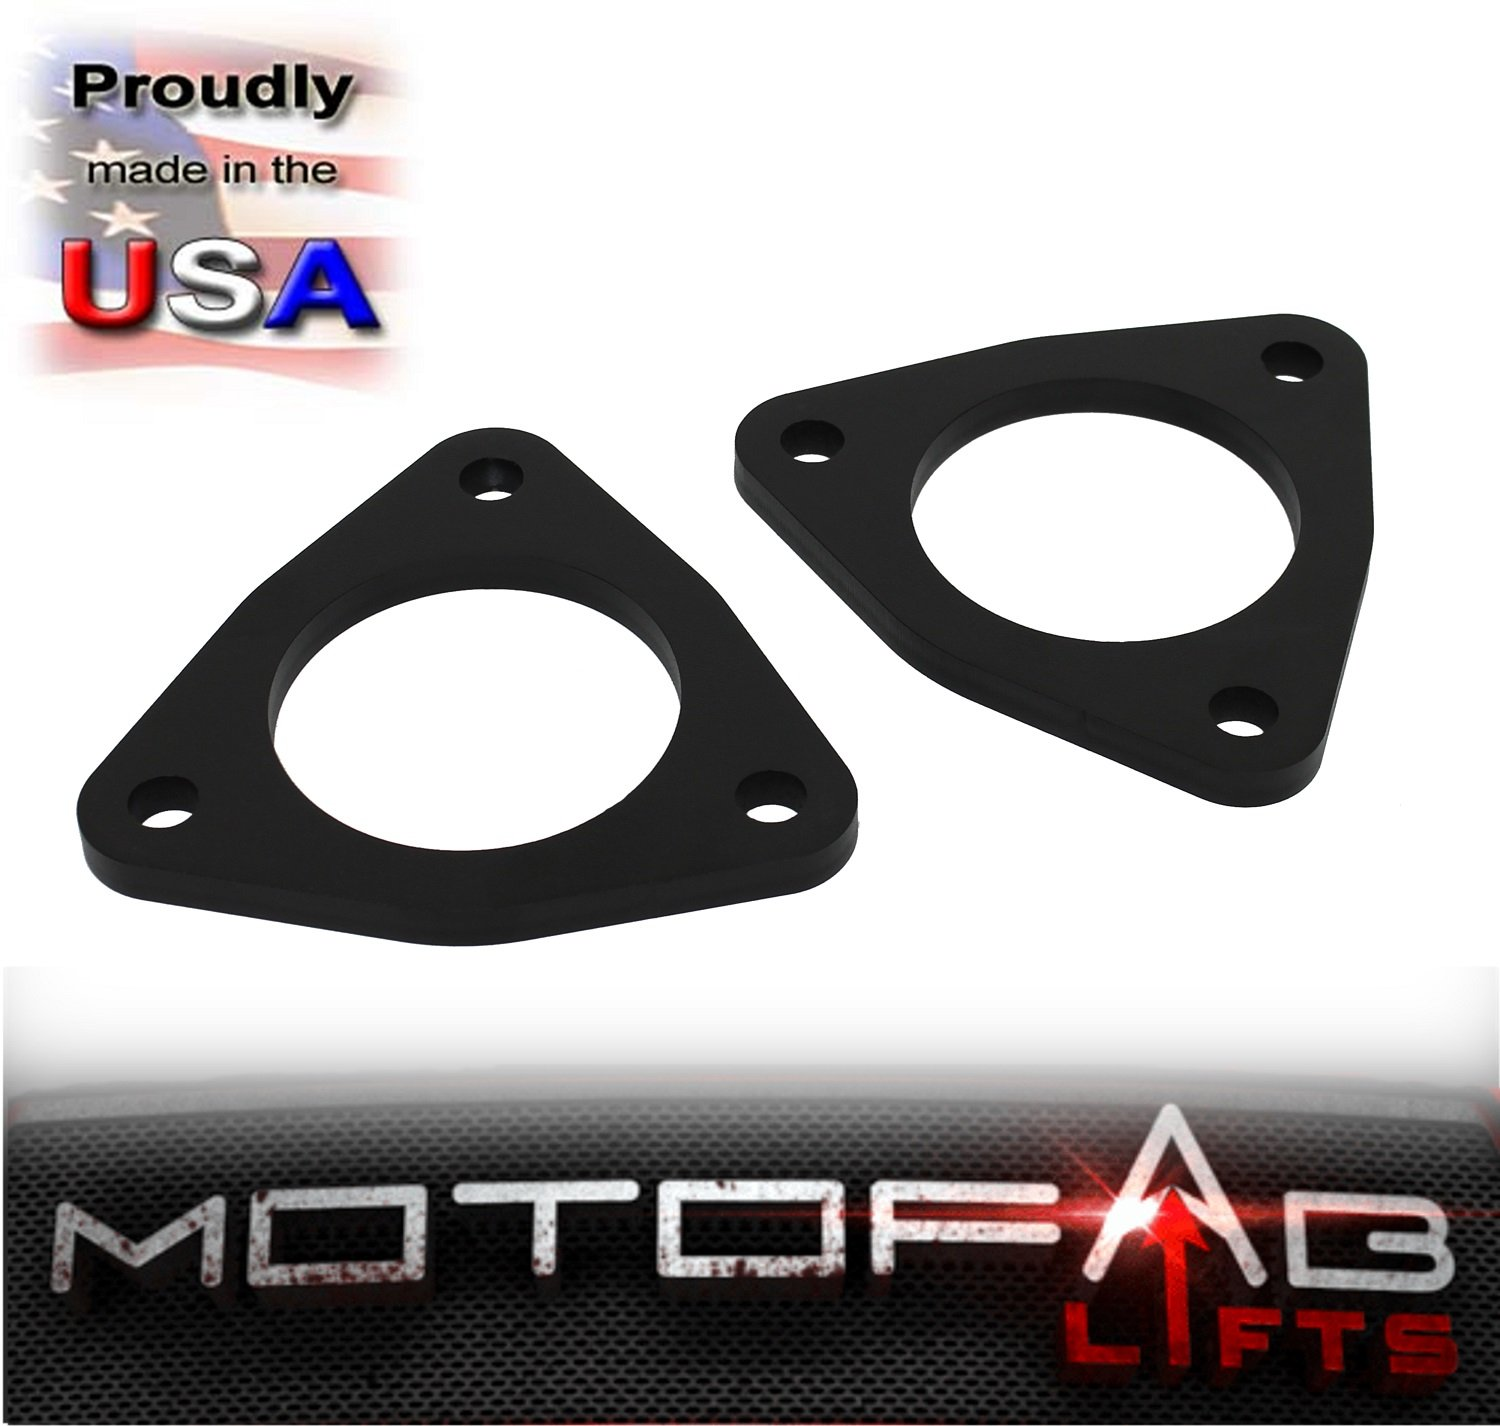 MotoFab Lifts CH-5TM 1//2 Front Leveling Lift Kit That Will Raise The Front Of Your Chevy//Gmc Pickup 2